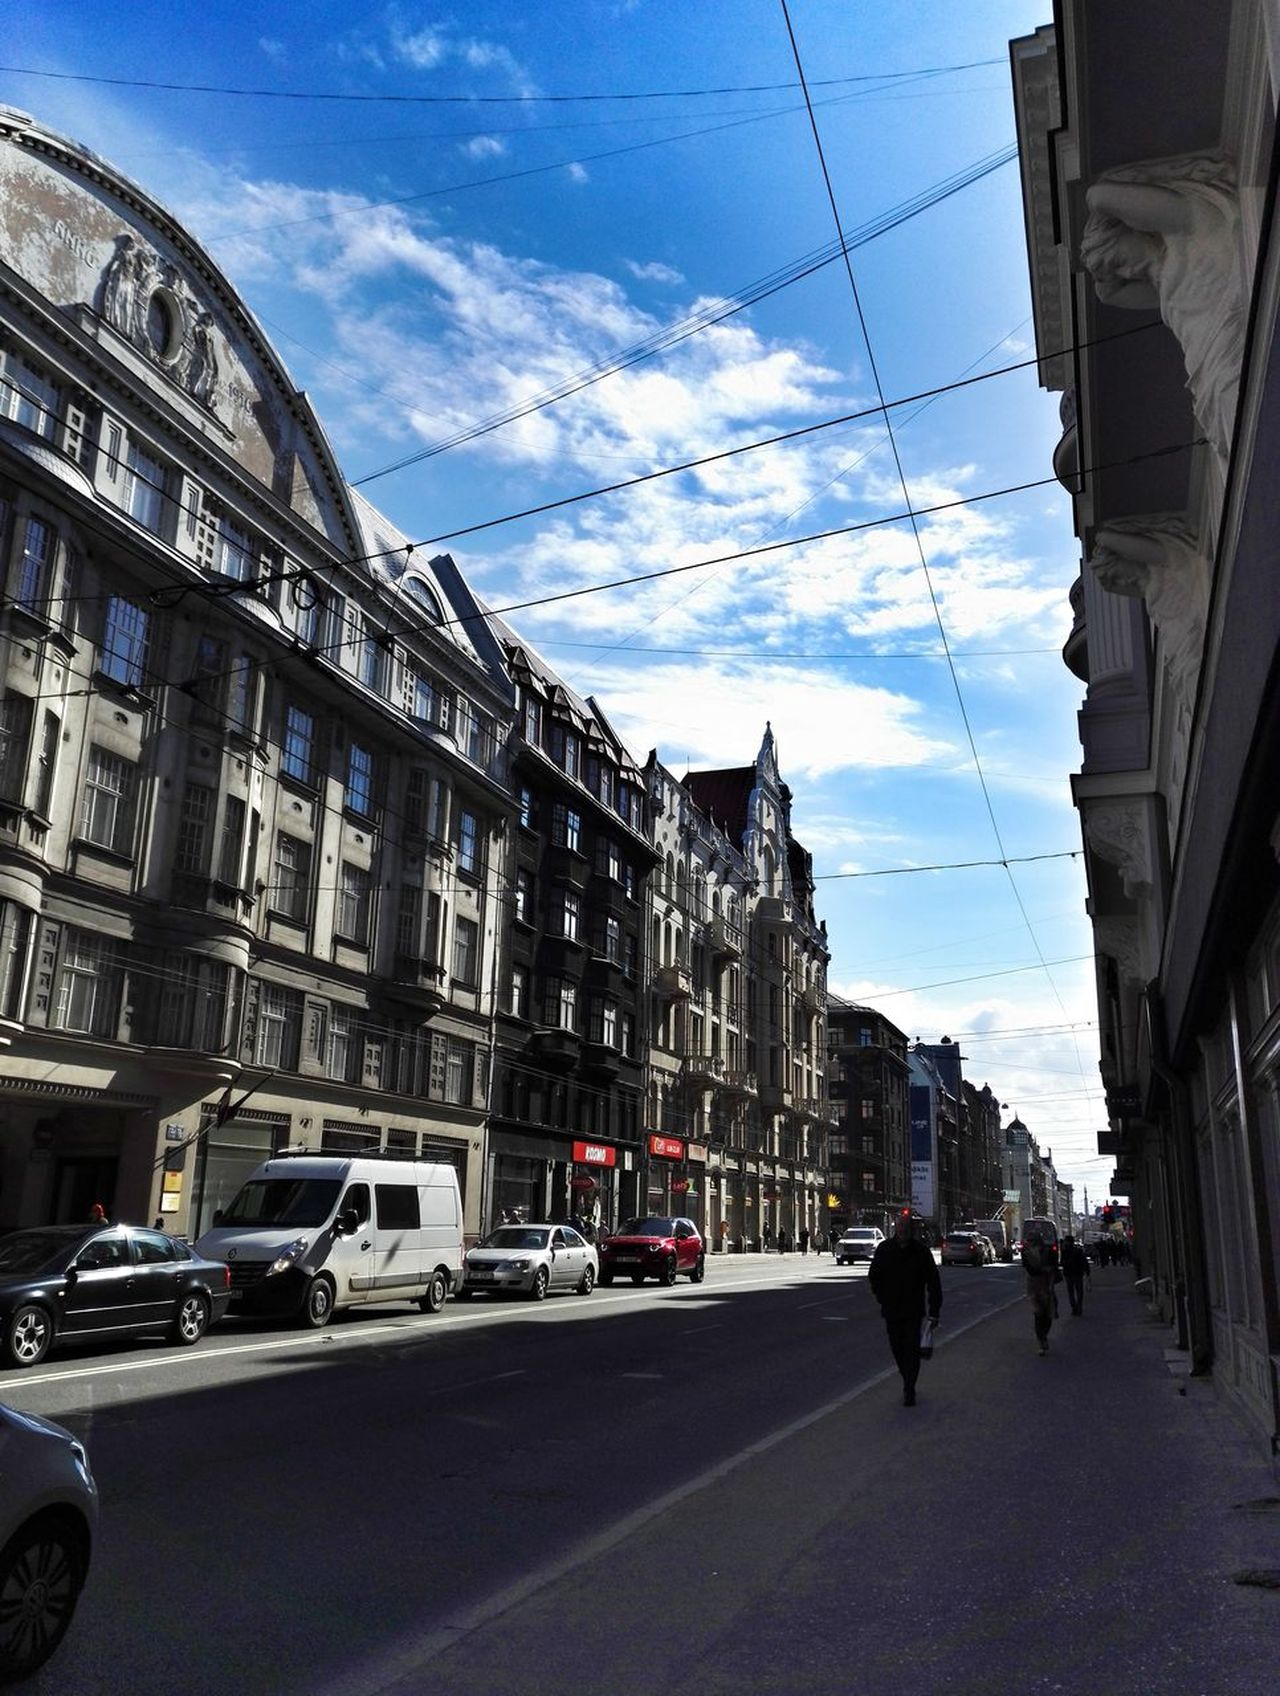 Architecture Building Exterior Sky Built Structure Street Outdoors Cloud - Sky Road Day City People Sky_collection